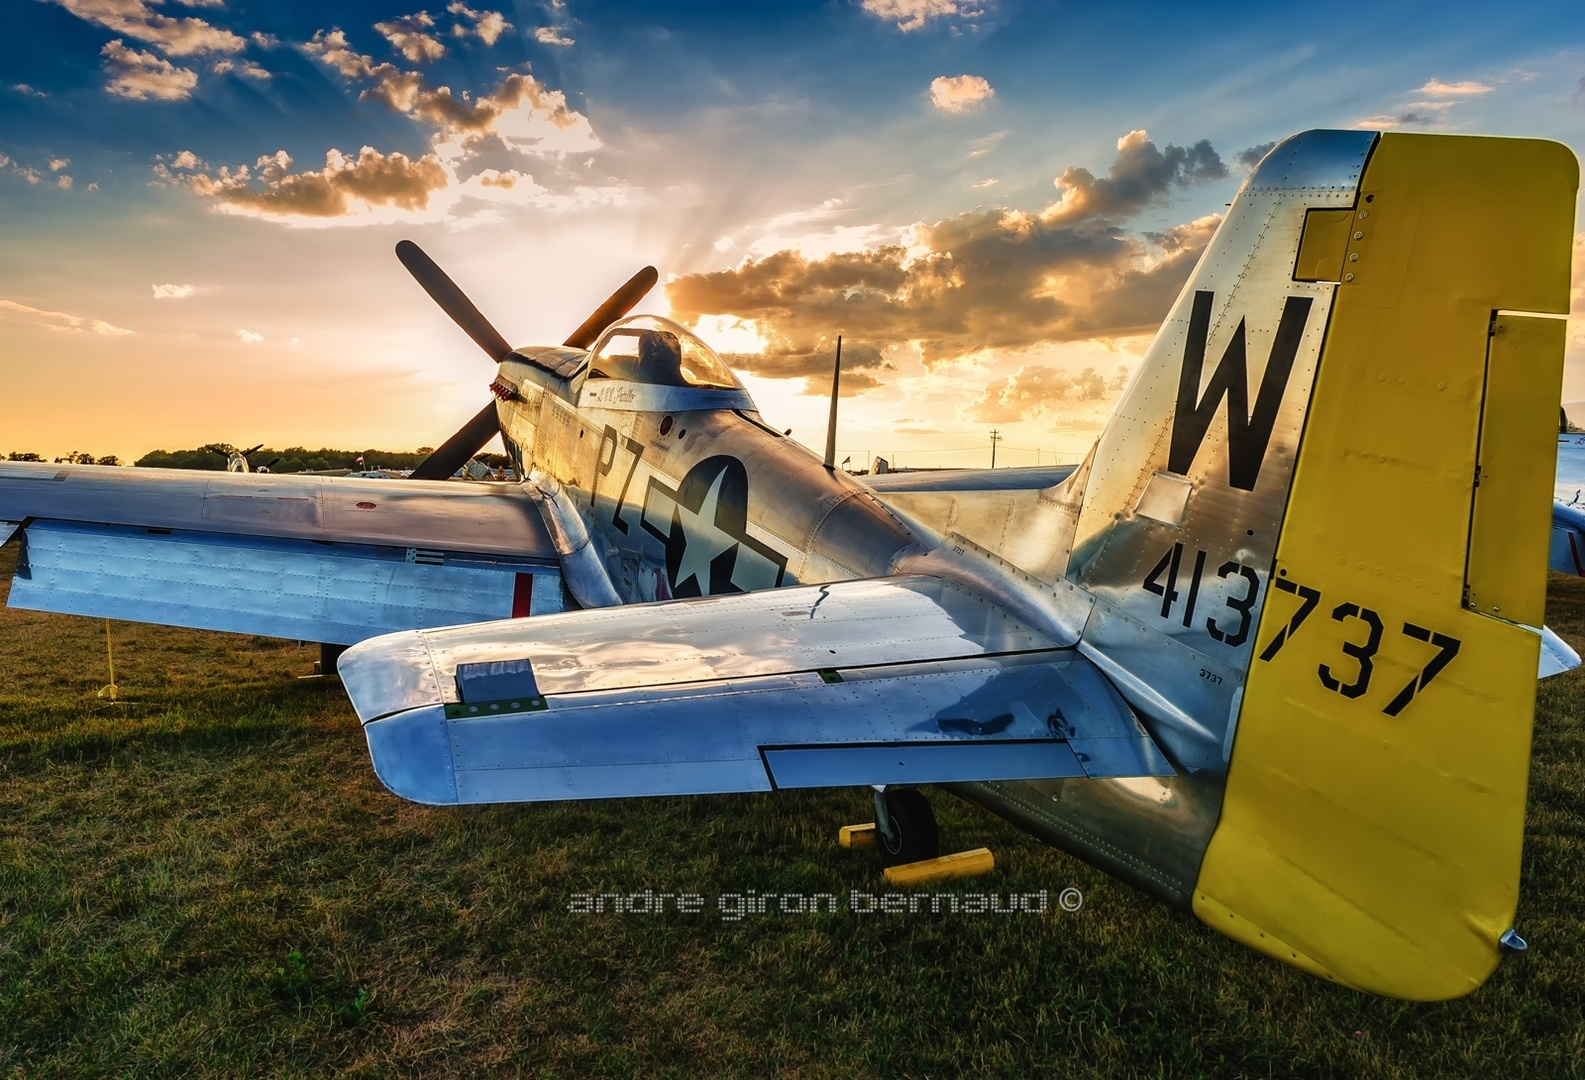 North American P-51 Mustang Little Rebel 413737 N5551D